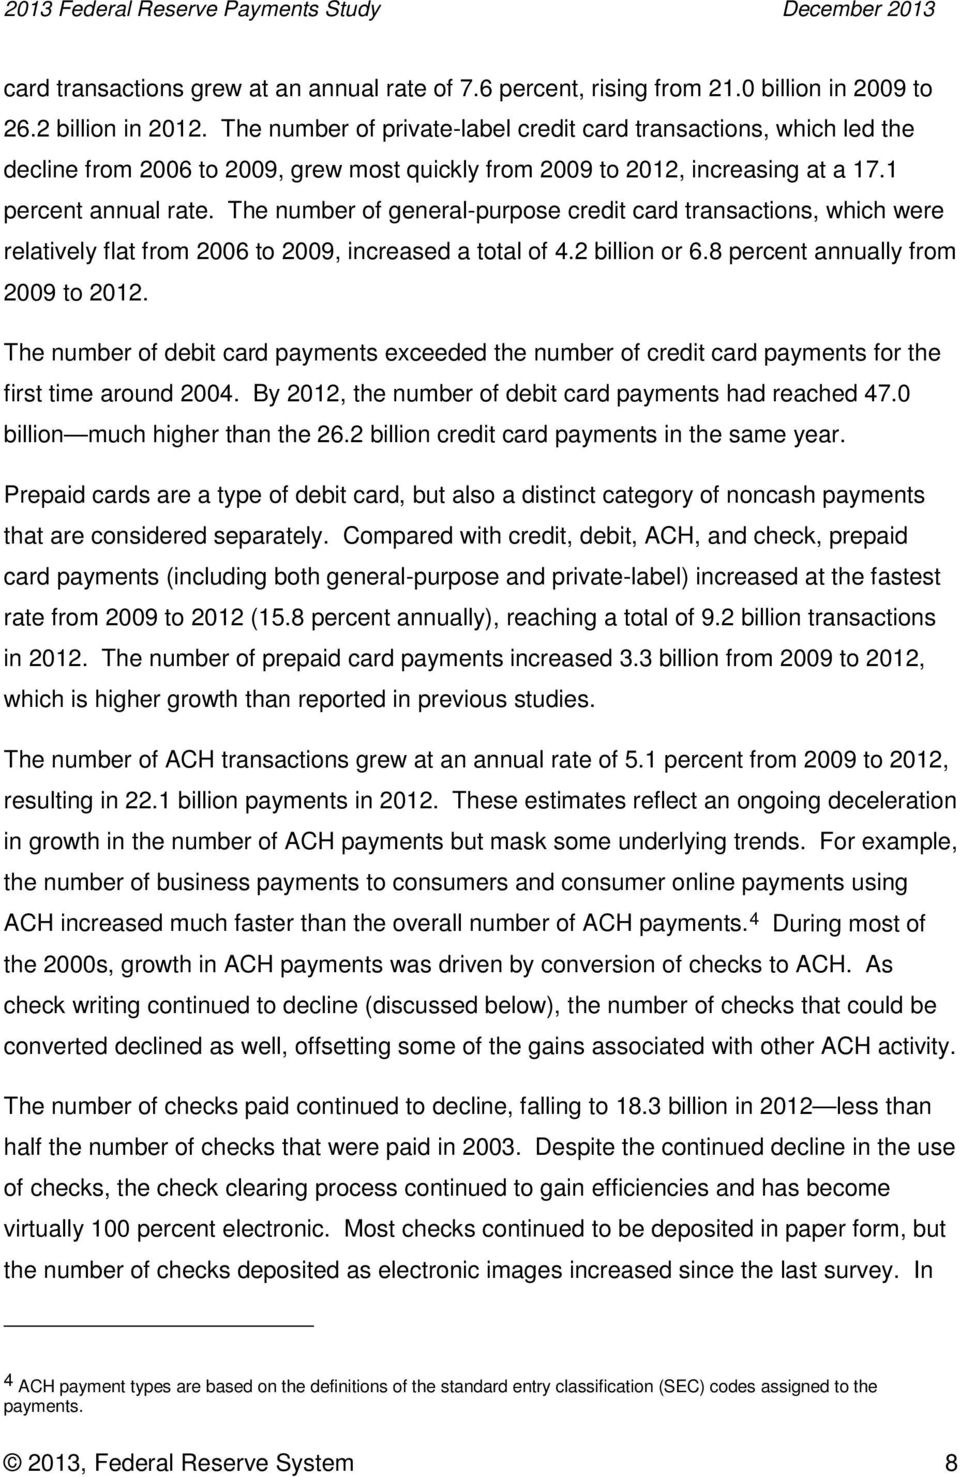 The number of general-purpose credit card transactions, which were relatively flat from 2006 to 2009, increased a total of 4.2 billion or 6.8 percent annually from 2009 to 2012.